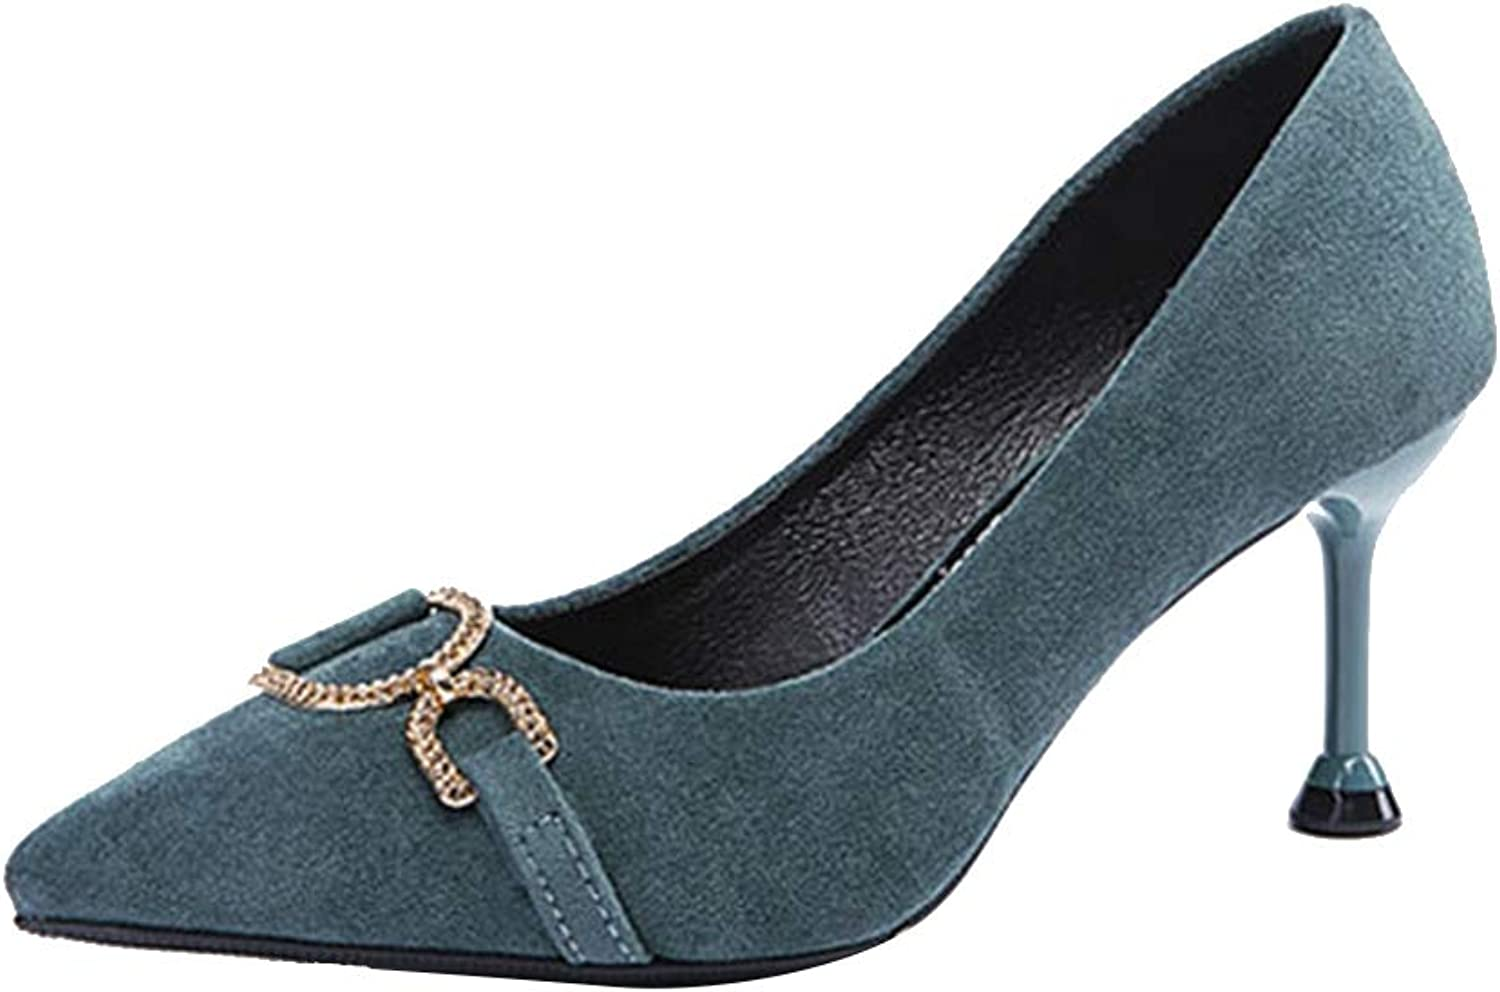 Sam Carle Women's Pumps,Elegant Suede Slip-on bluee Black Business Formal High Heels